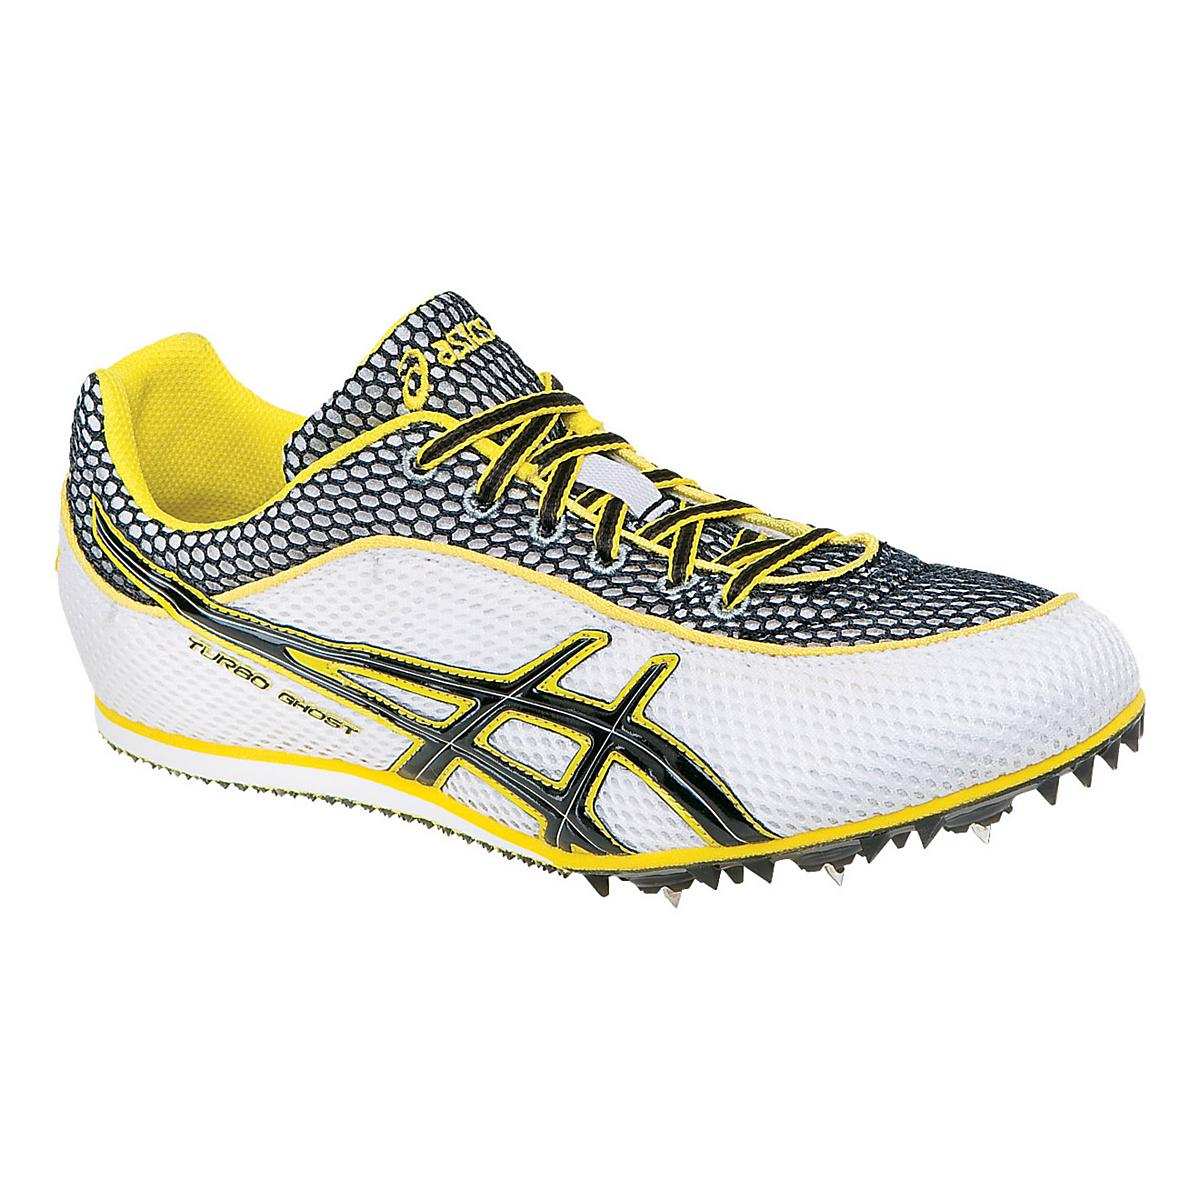 119f2ed6fde3 Mens ASICS Turbo Ghost 3 Track and Field Shoe at Road Runner Sports